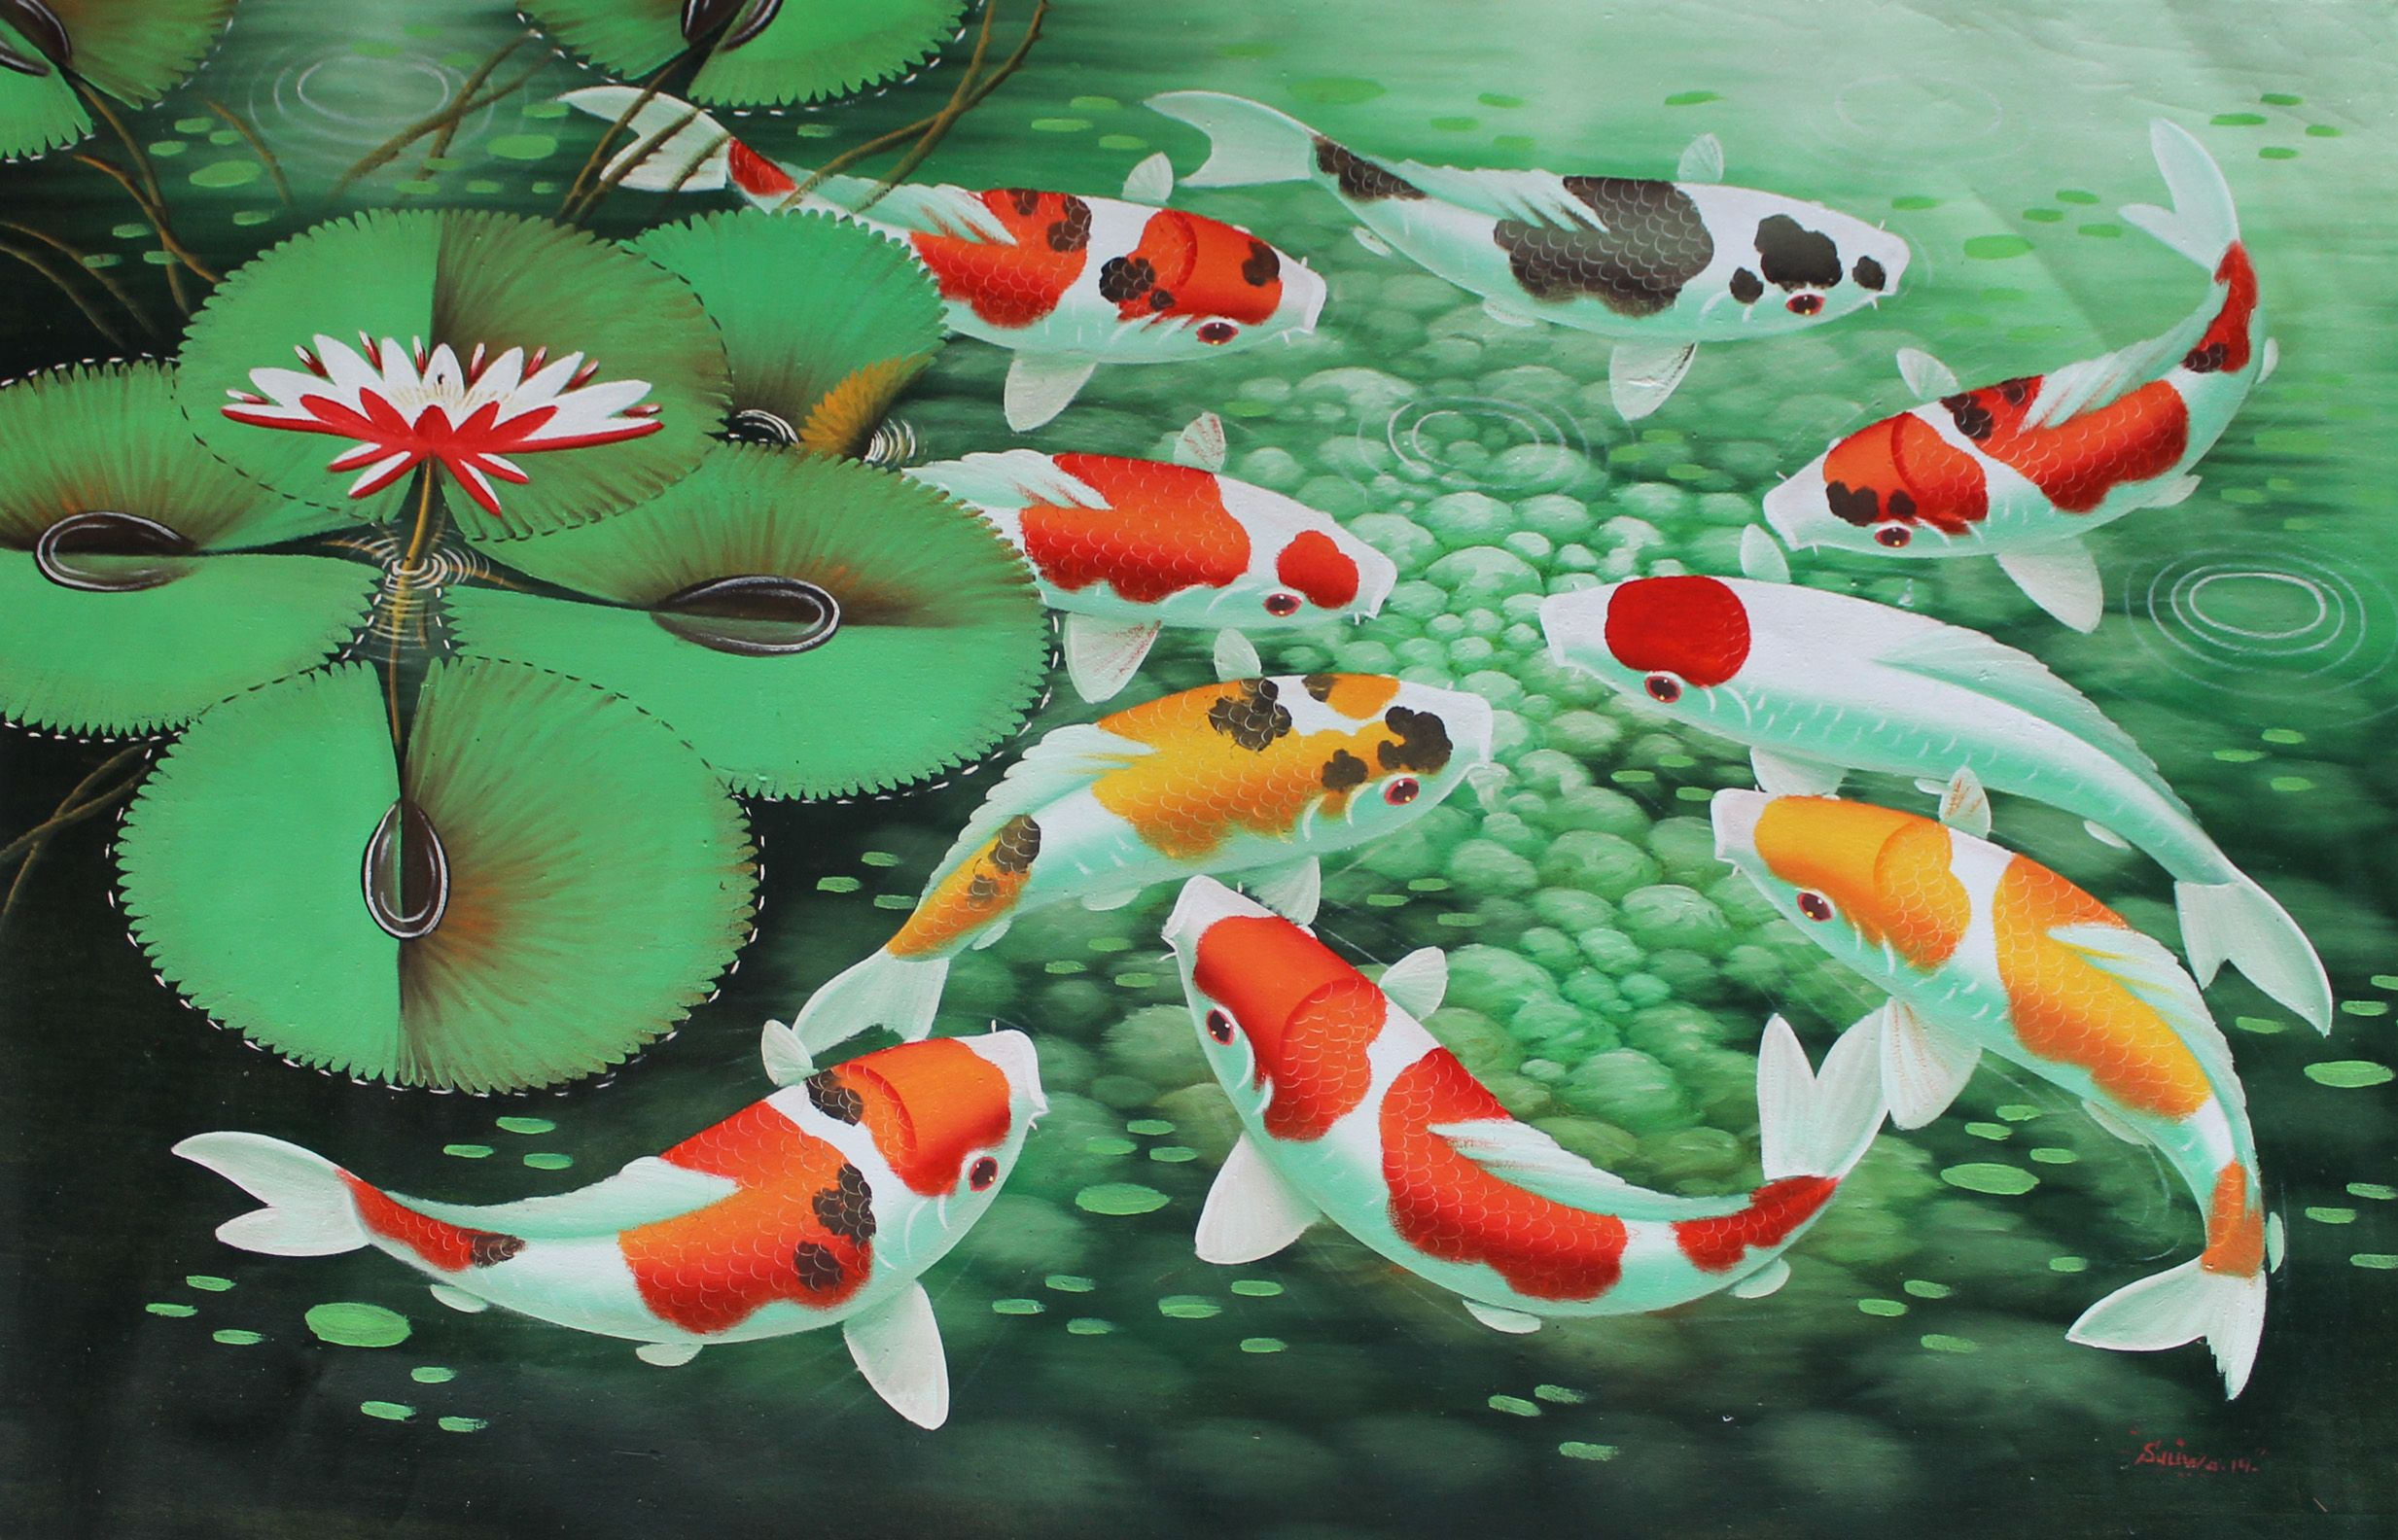 Koi fish painting wallpaper love of koi pinterest for Coy fish painting